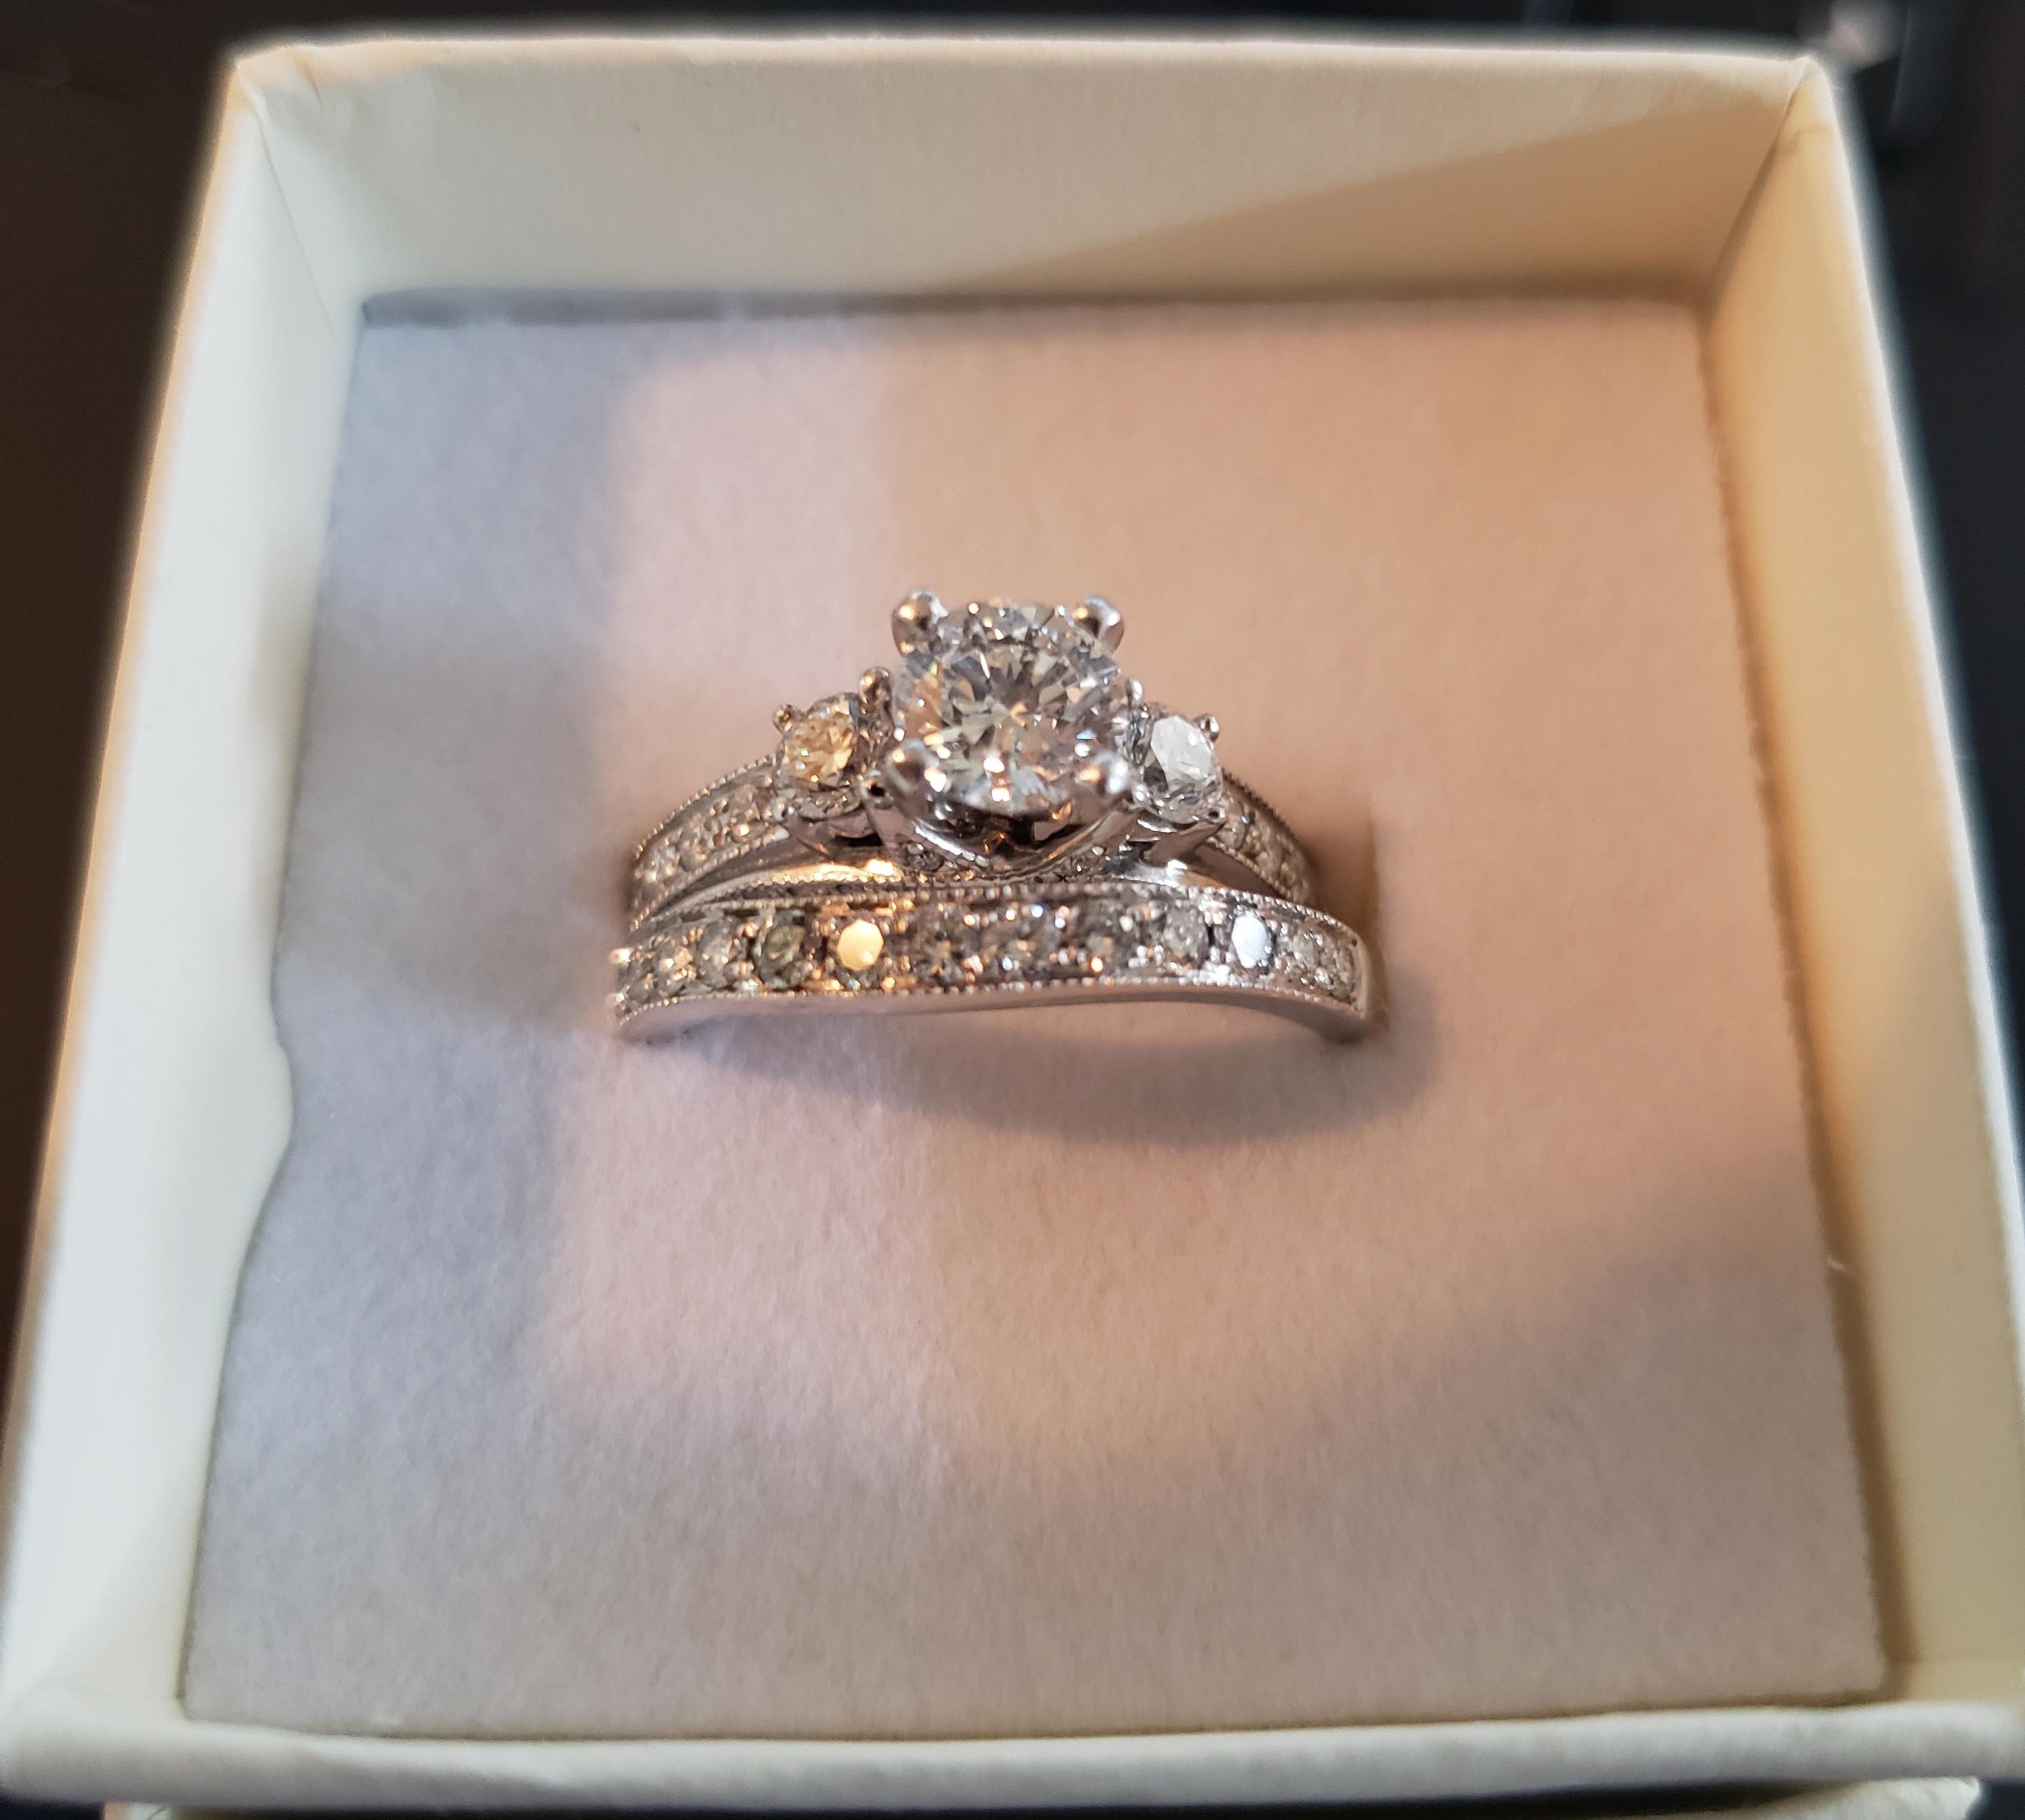 Beautiful engagement ring and